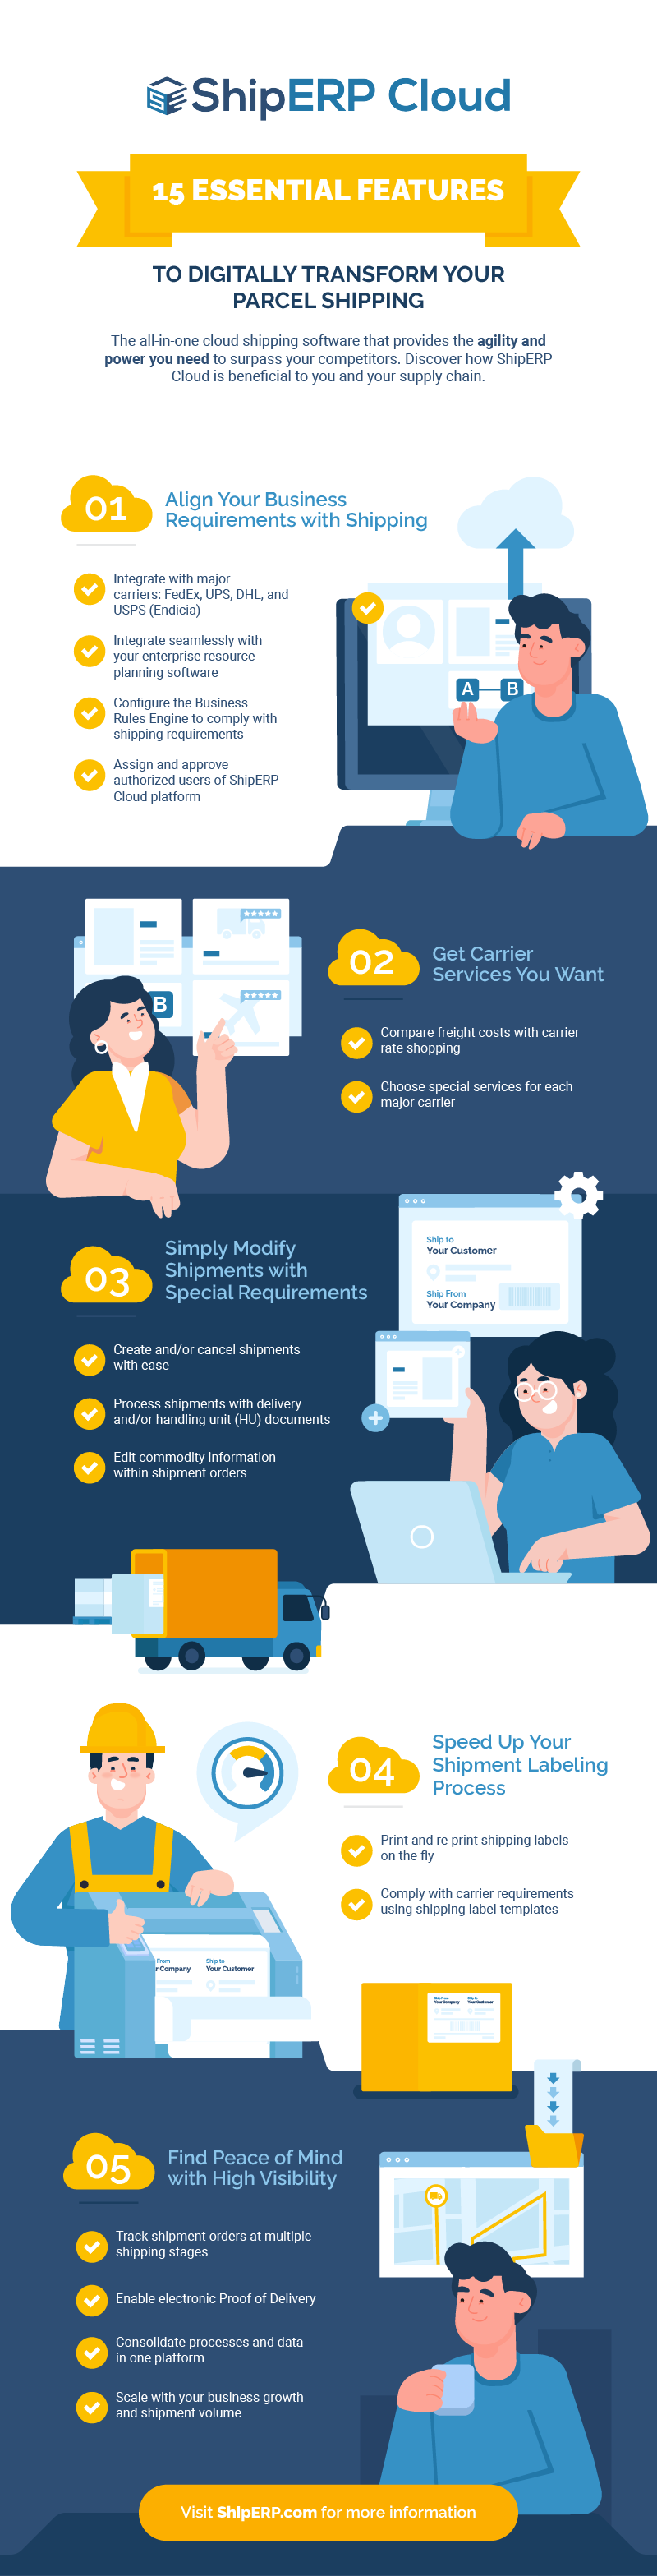 ShipERP Cloud Infographic